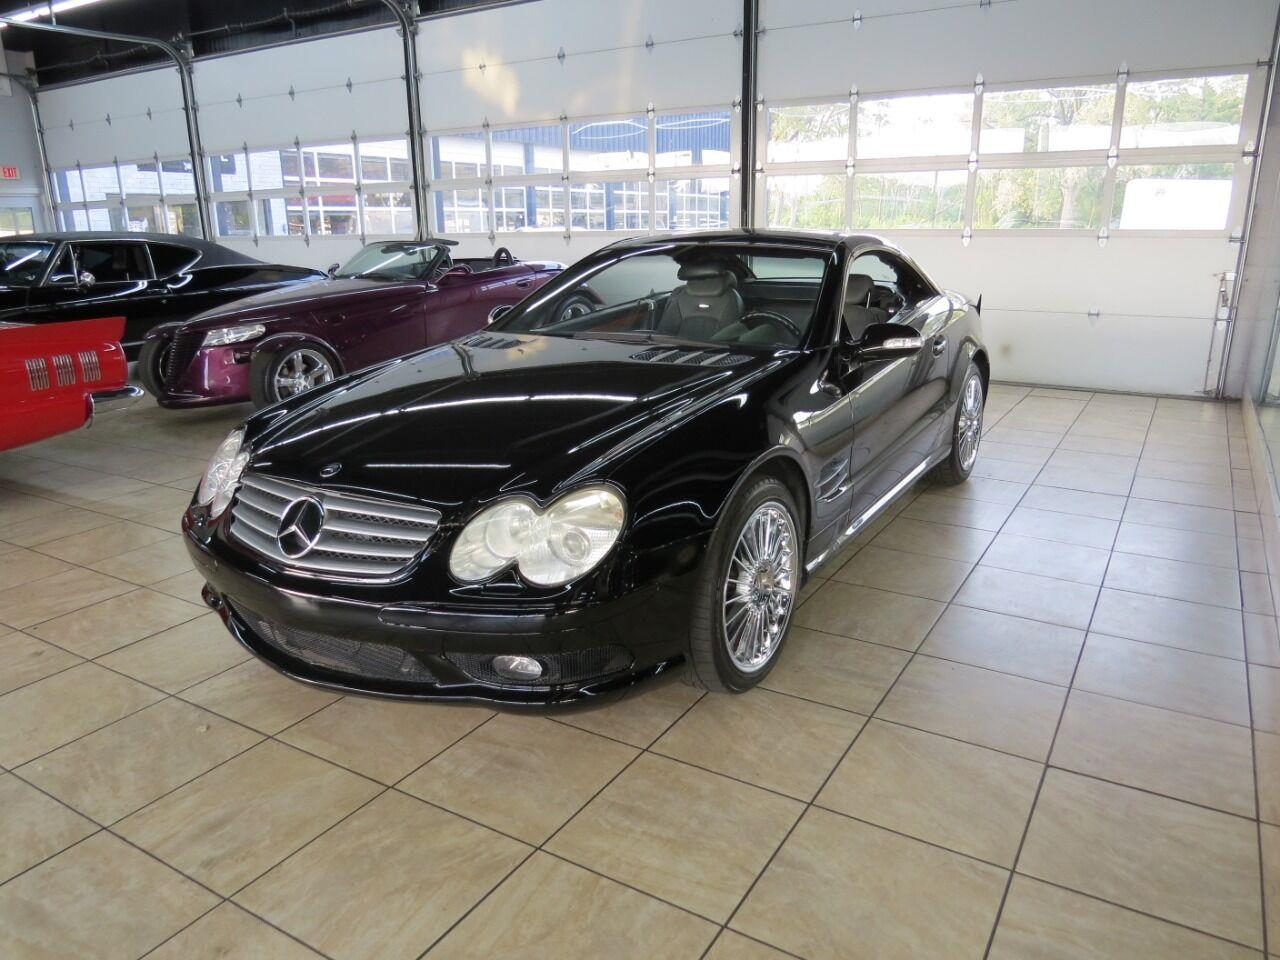 2003 Mercedes-Benz SL-Class (CC-1417129) for sale in St. Charles, Illinois